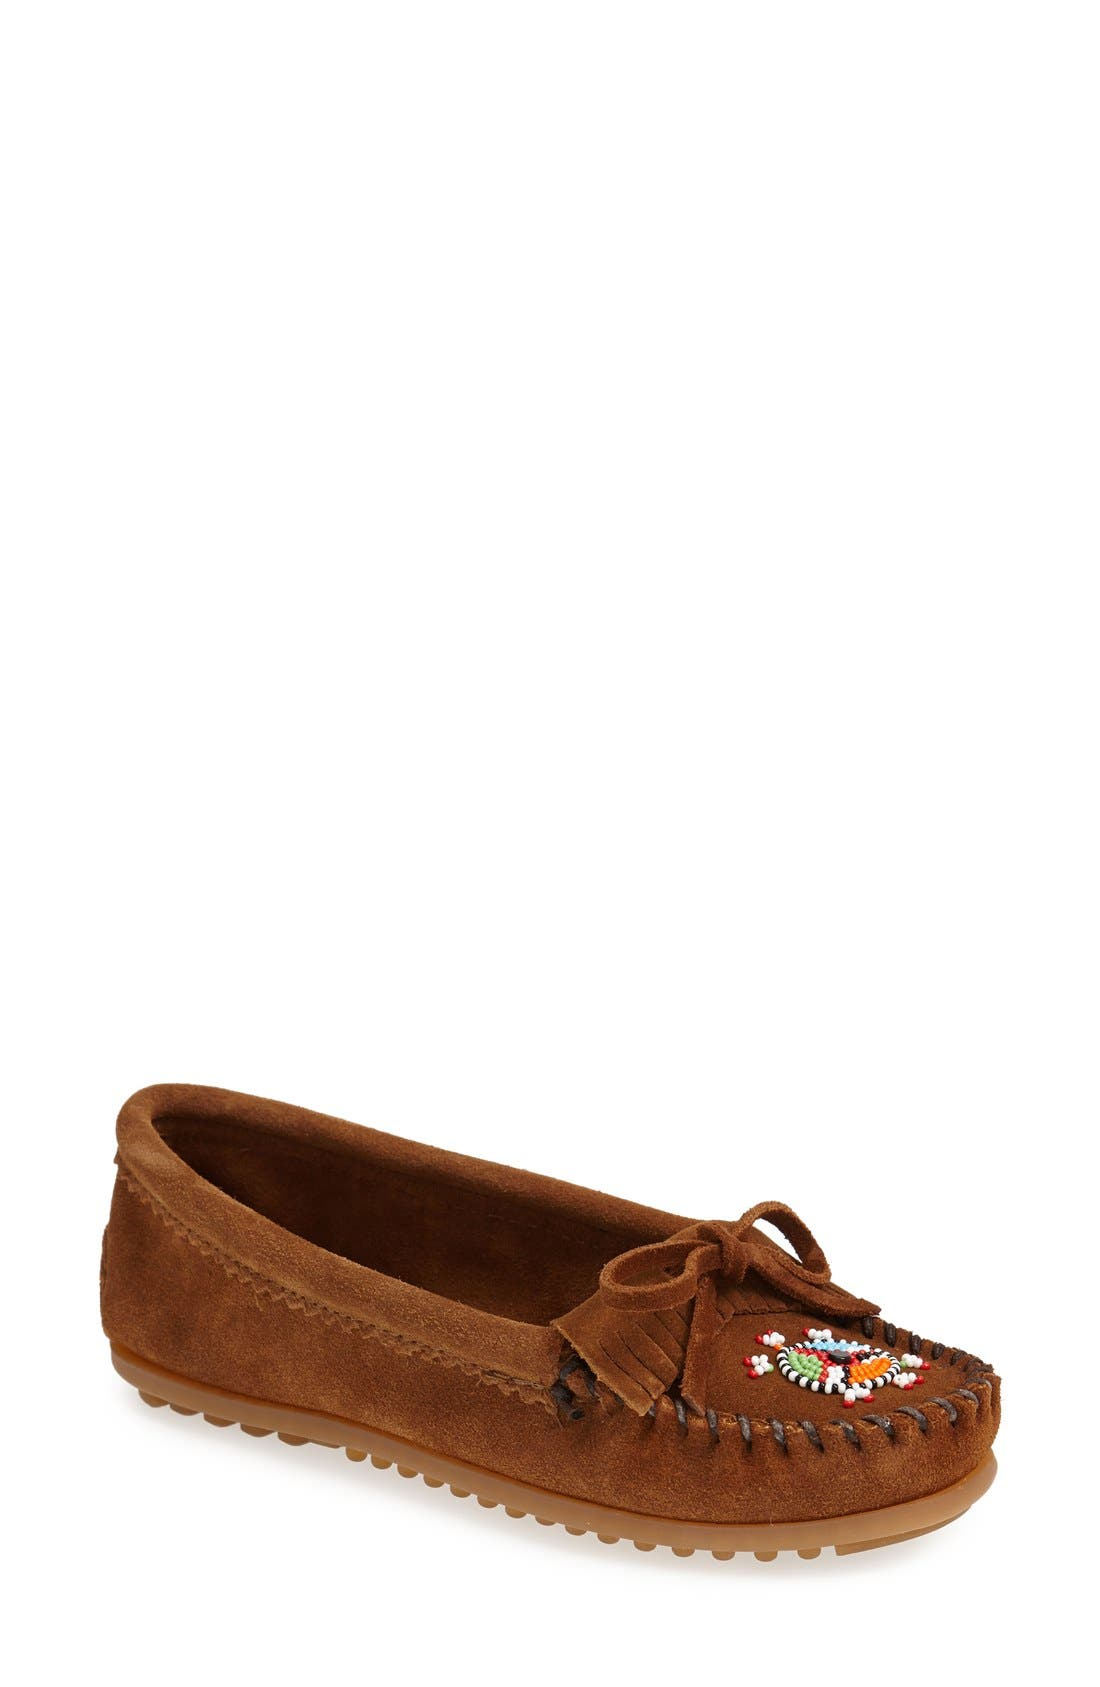 'Me to We Artisans - Kilty' Beaded Moccasin,                         Main,                         color, Dusty Brown